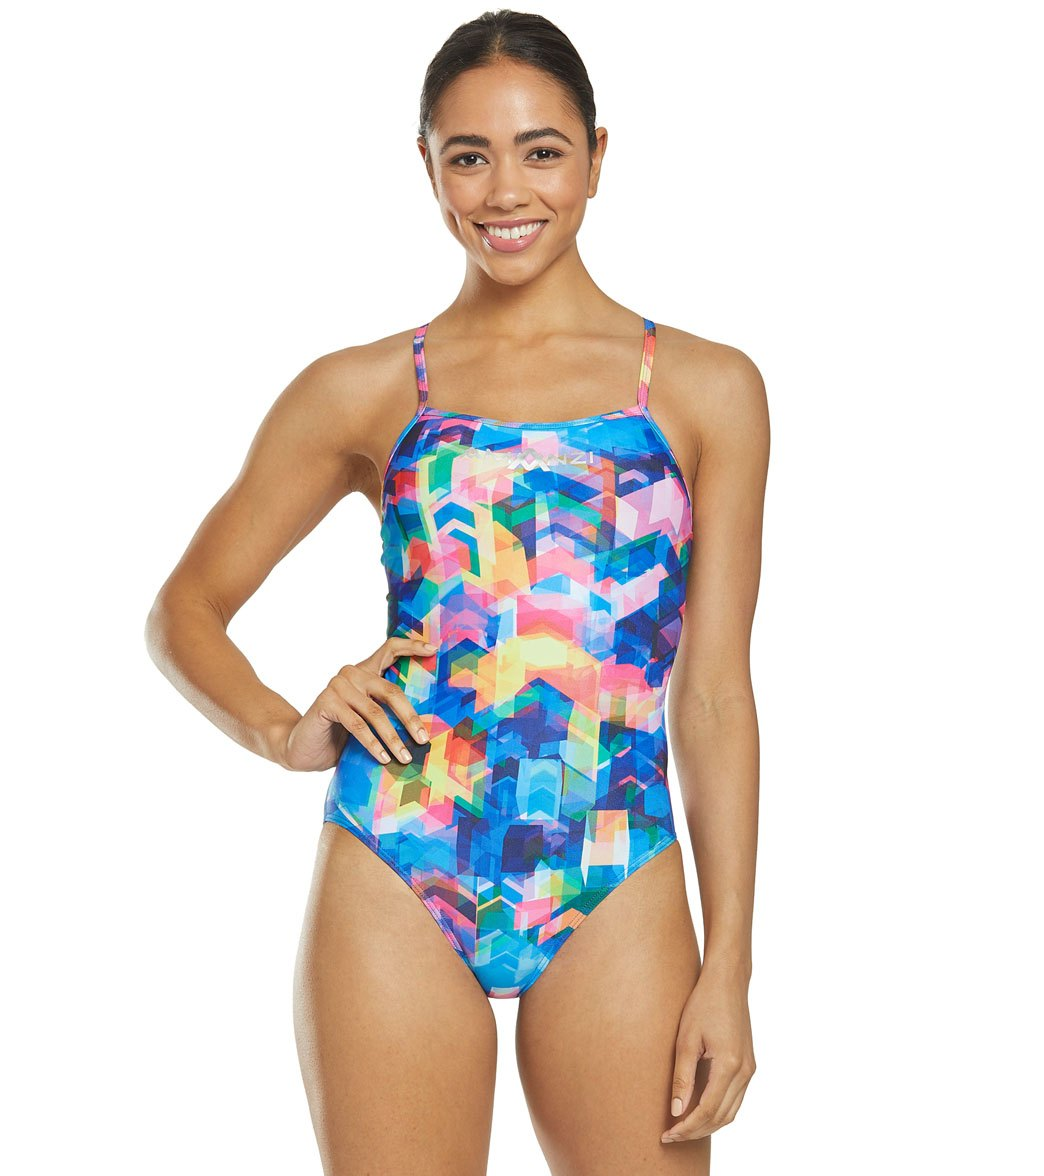 4f6fe4a7e Amanzi Women's Free Flow One Piece Swimsuit at SwimOutlet.com - Free  Shipping